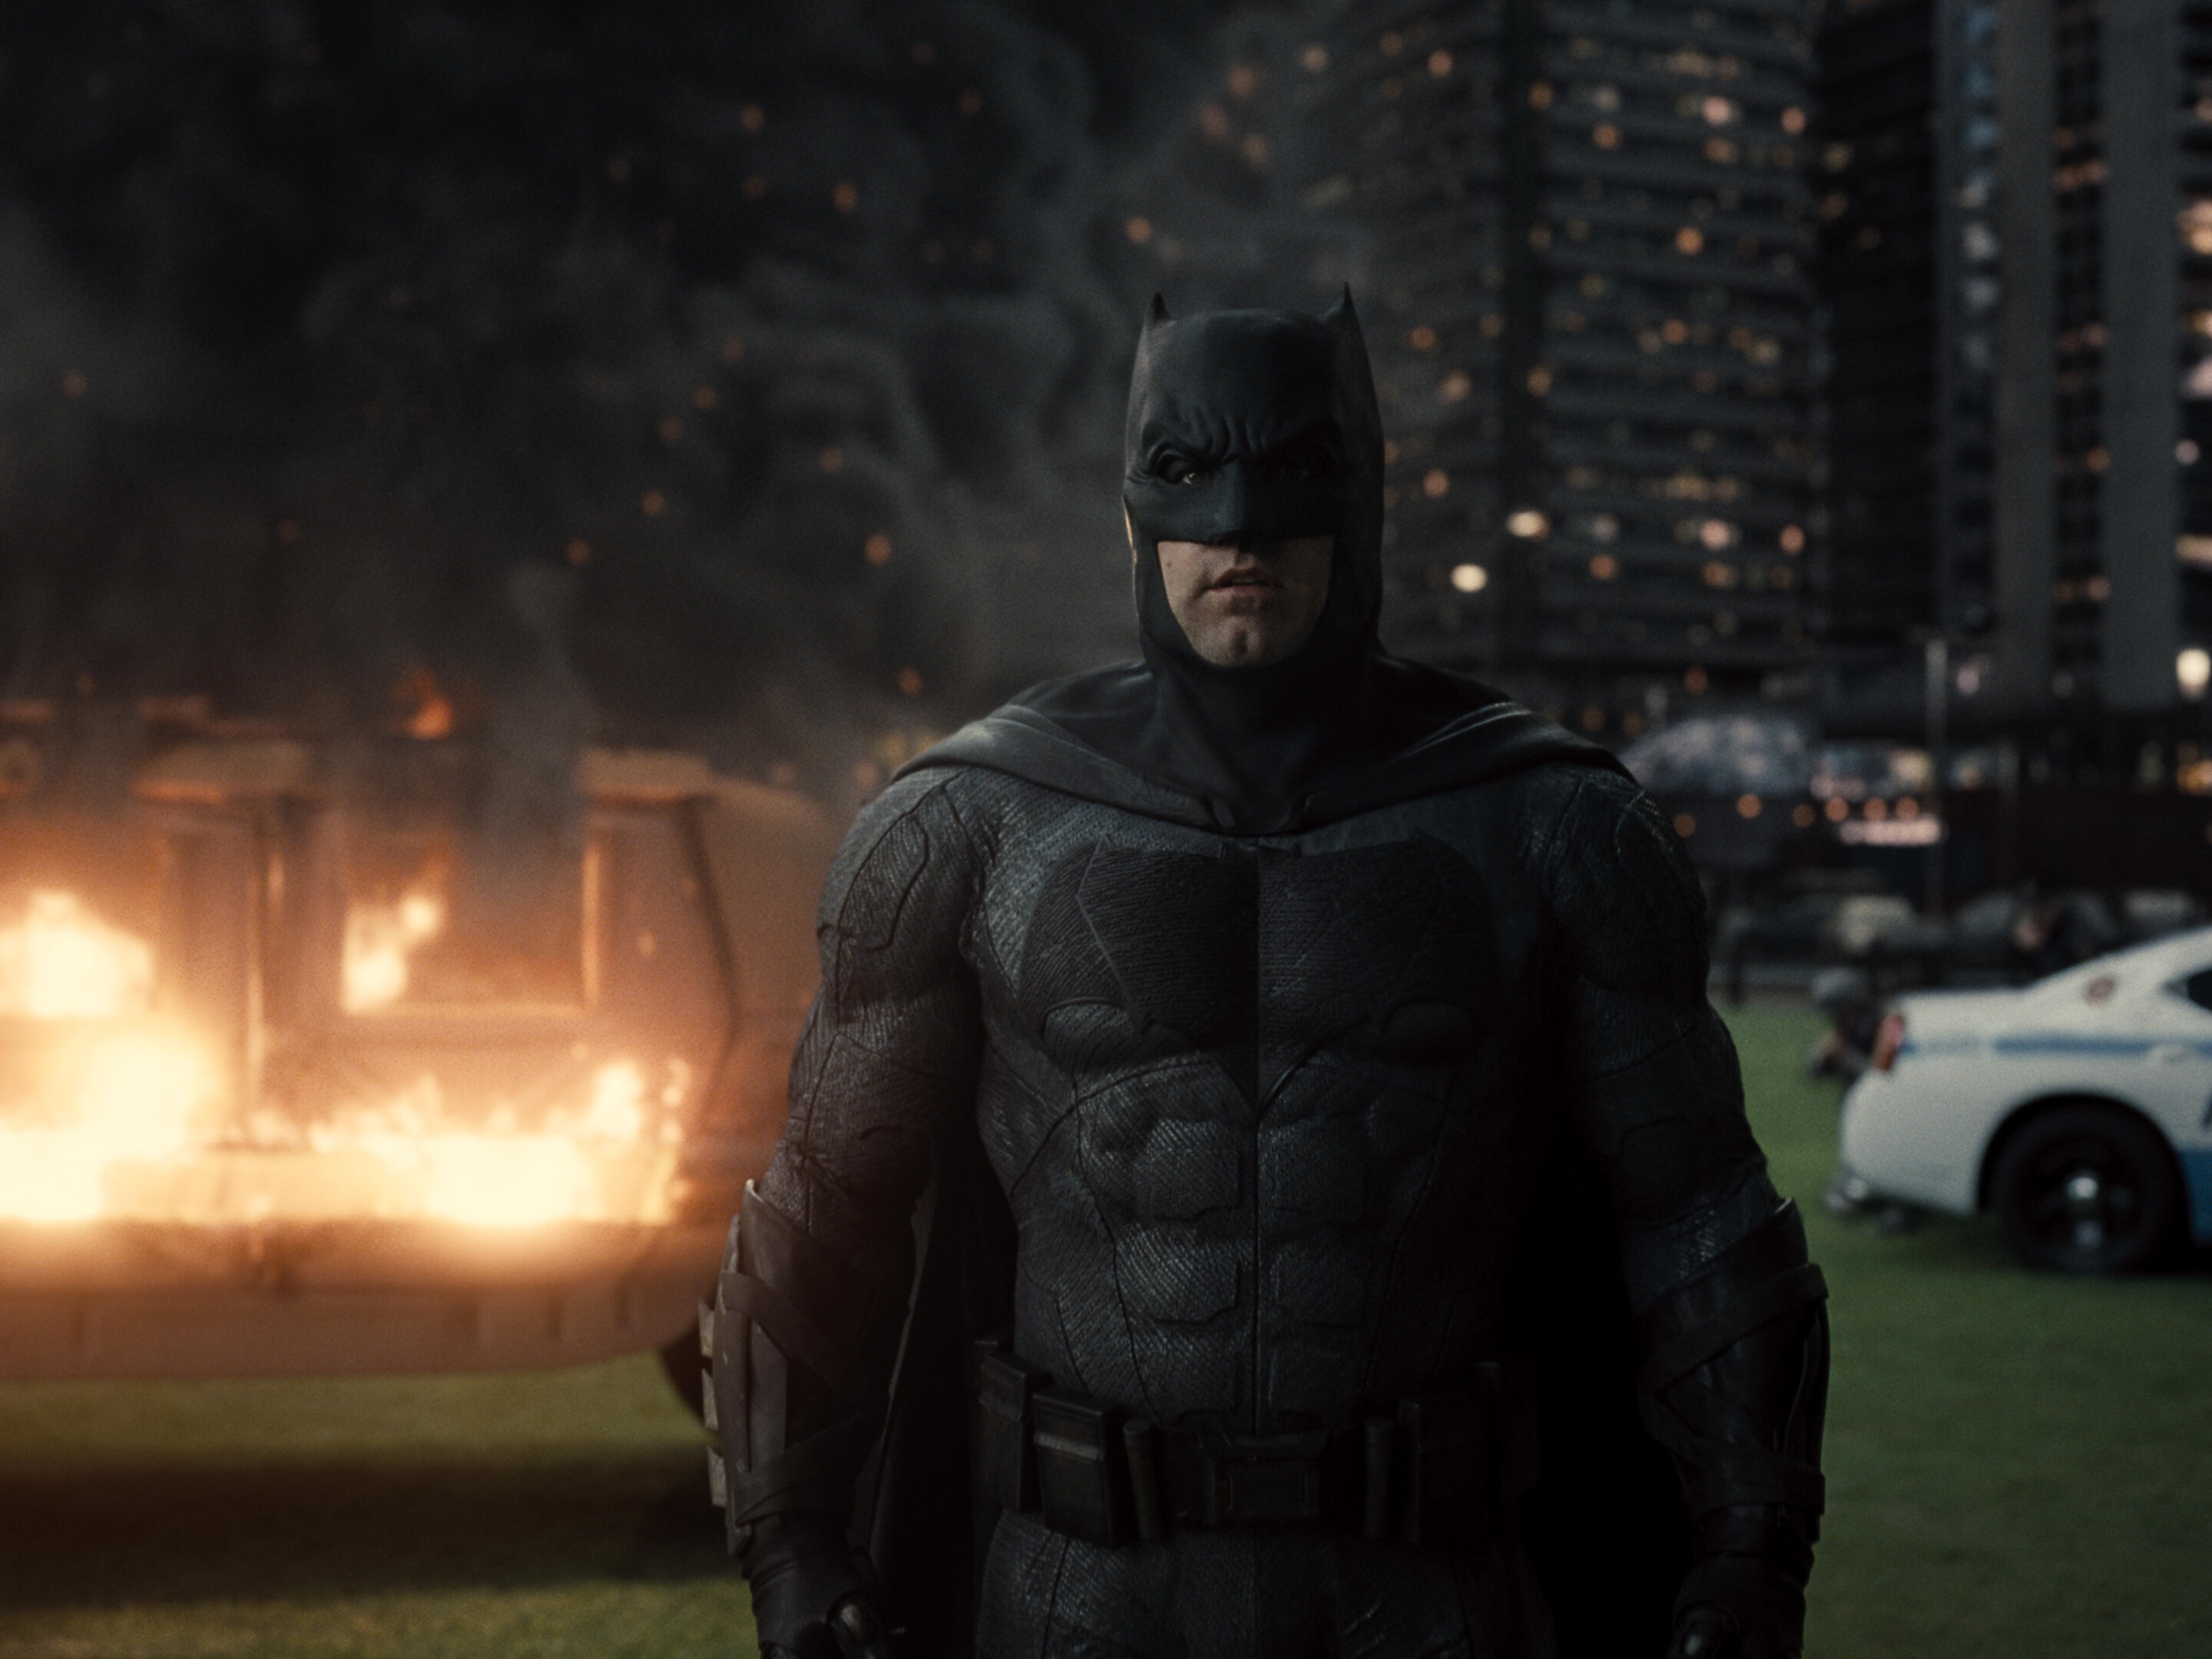 Snyder Cut ending explained: Justice League epilogue's cameos and dangling  plot threads - CNET